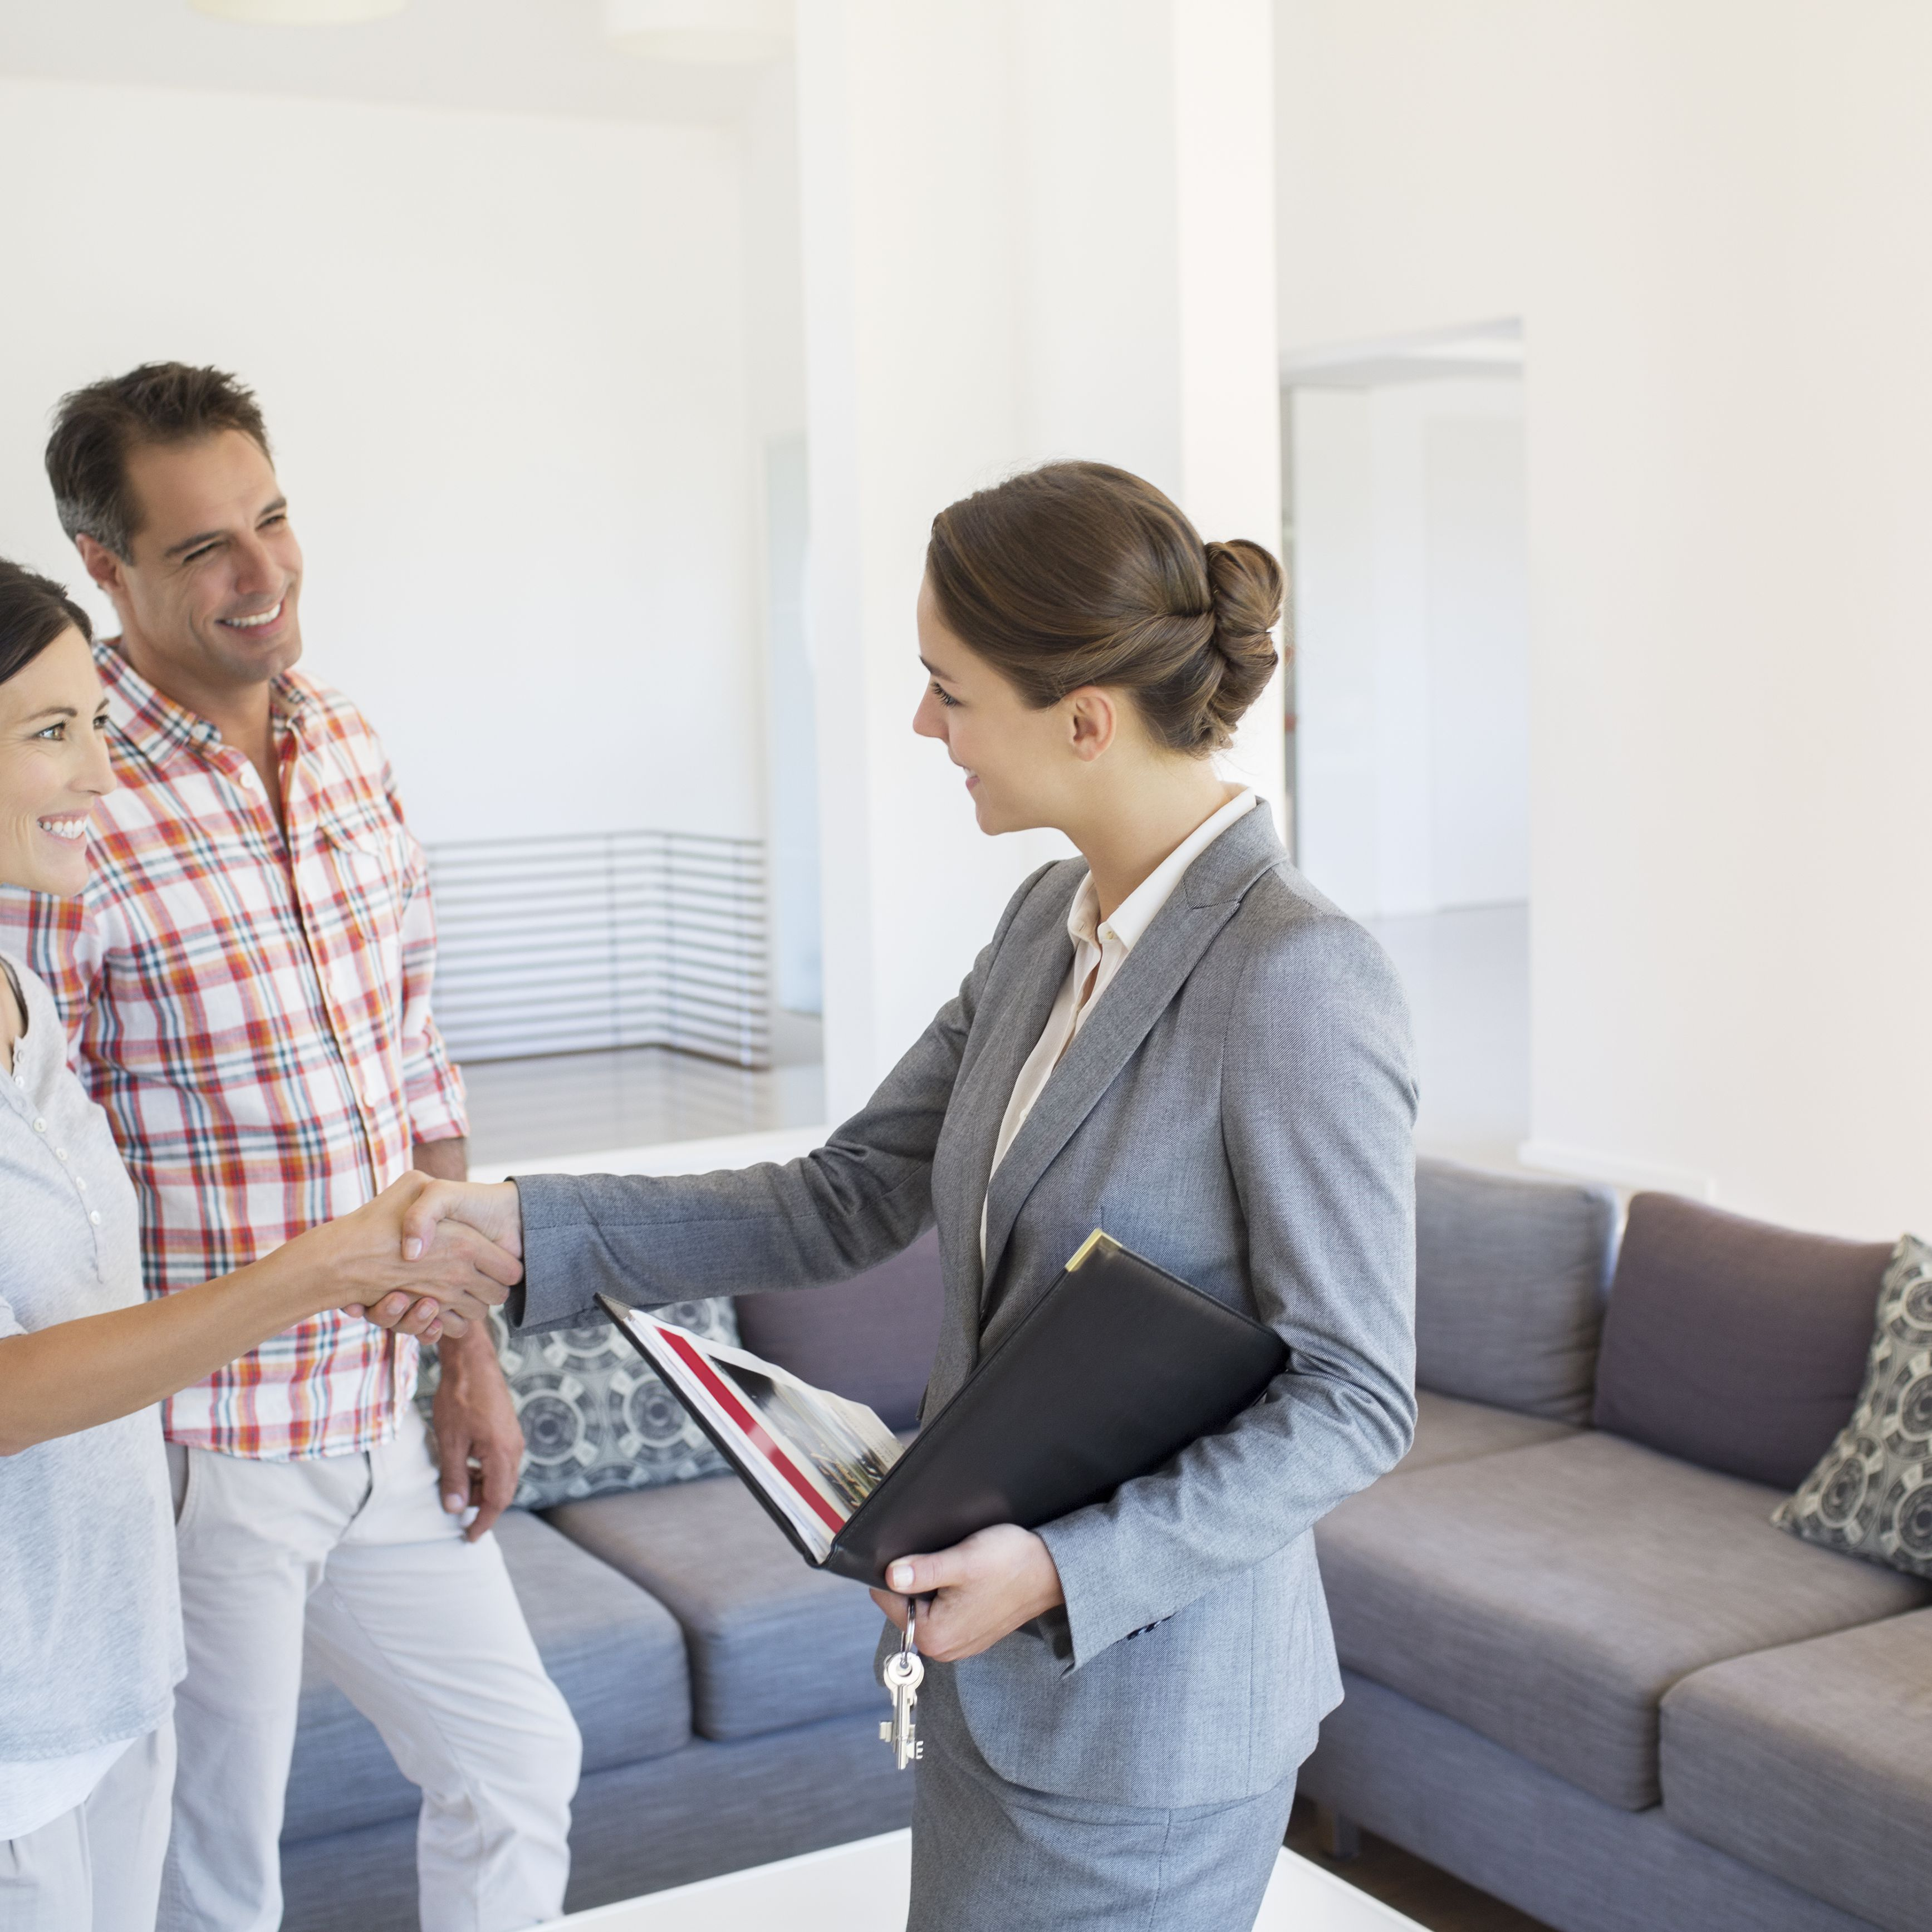 Rules for Home Buyers Working With Real Estate Agents